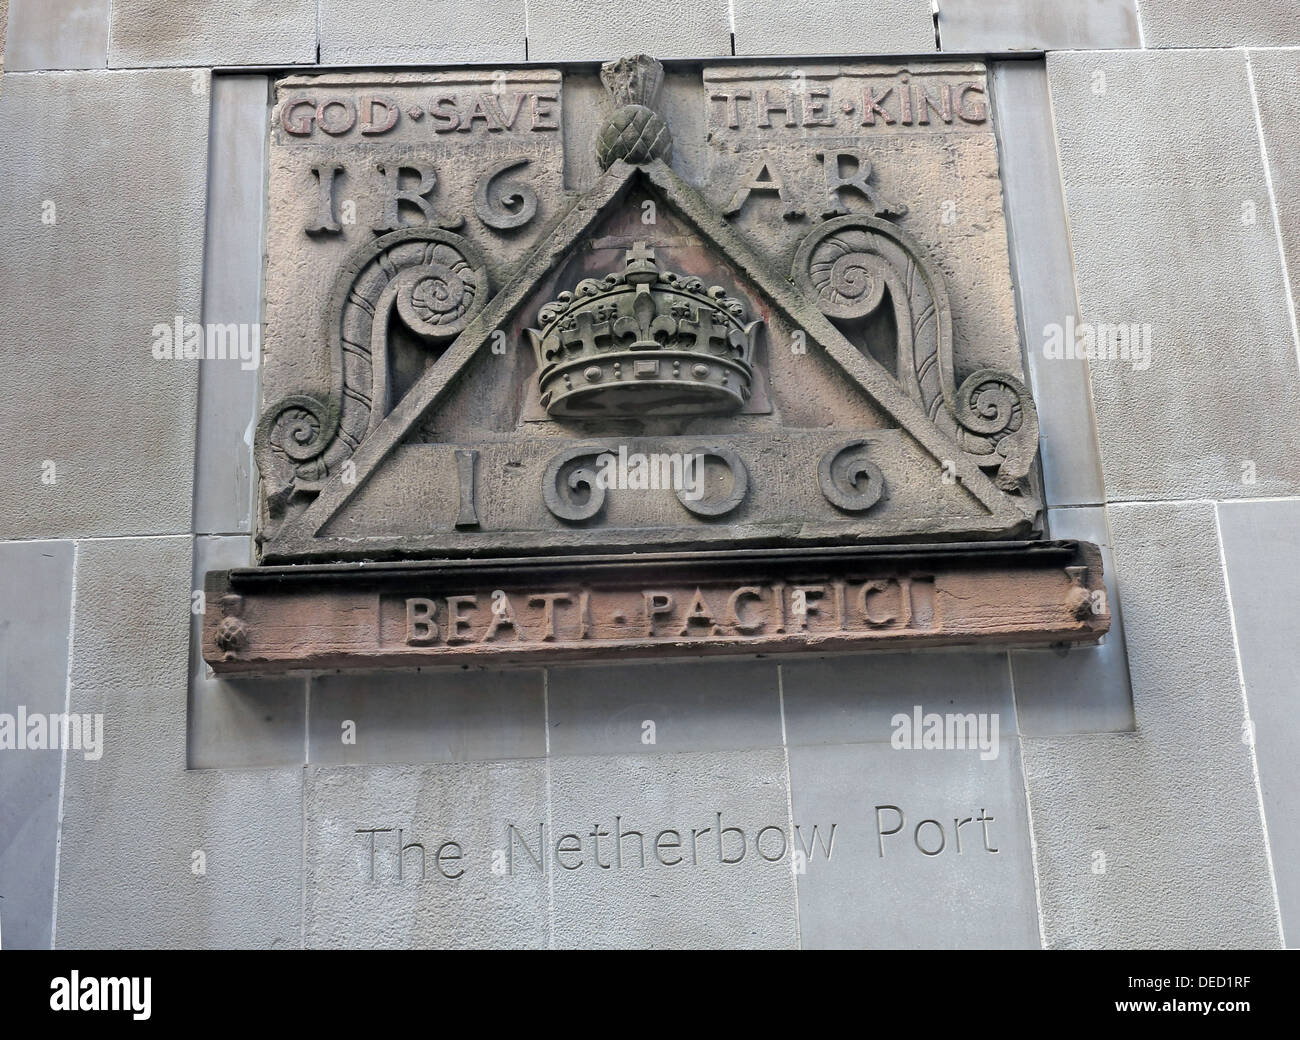 Crest stones indicating the location of the Netherbow Port Canongate Royalmile Edinburgh Scotland UK - Stock Image